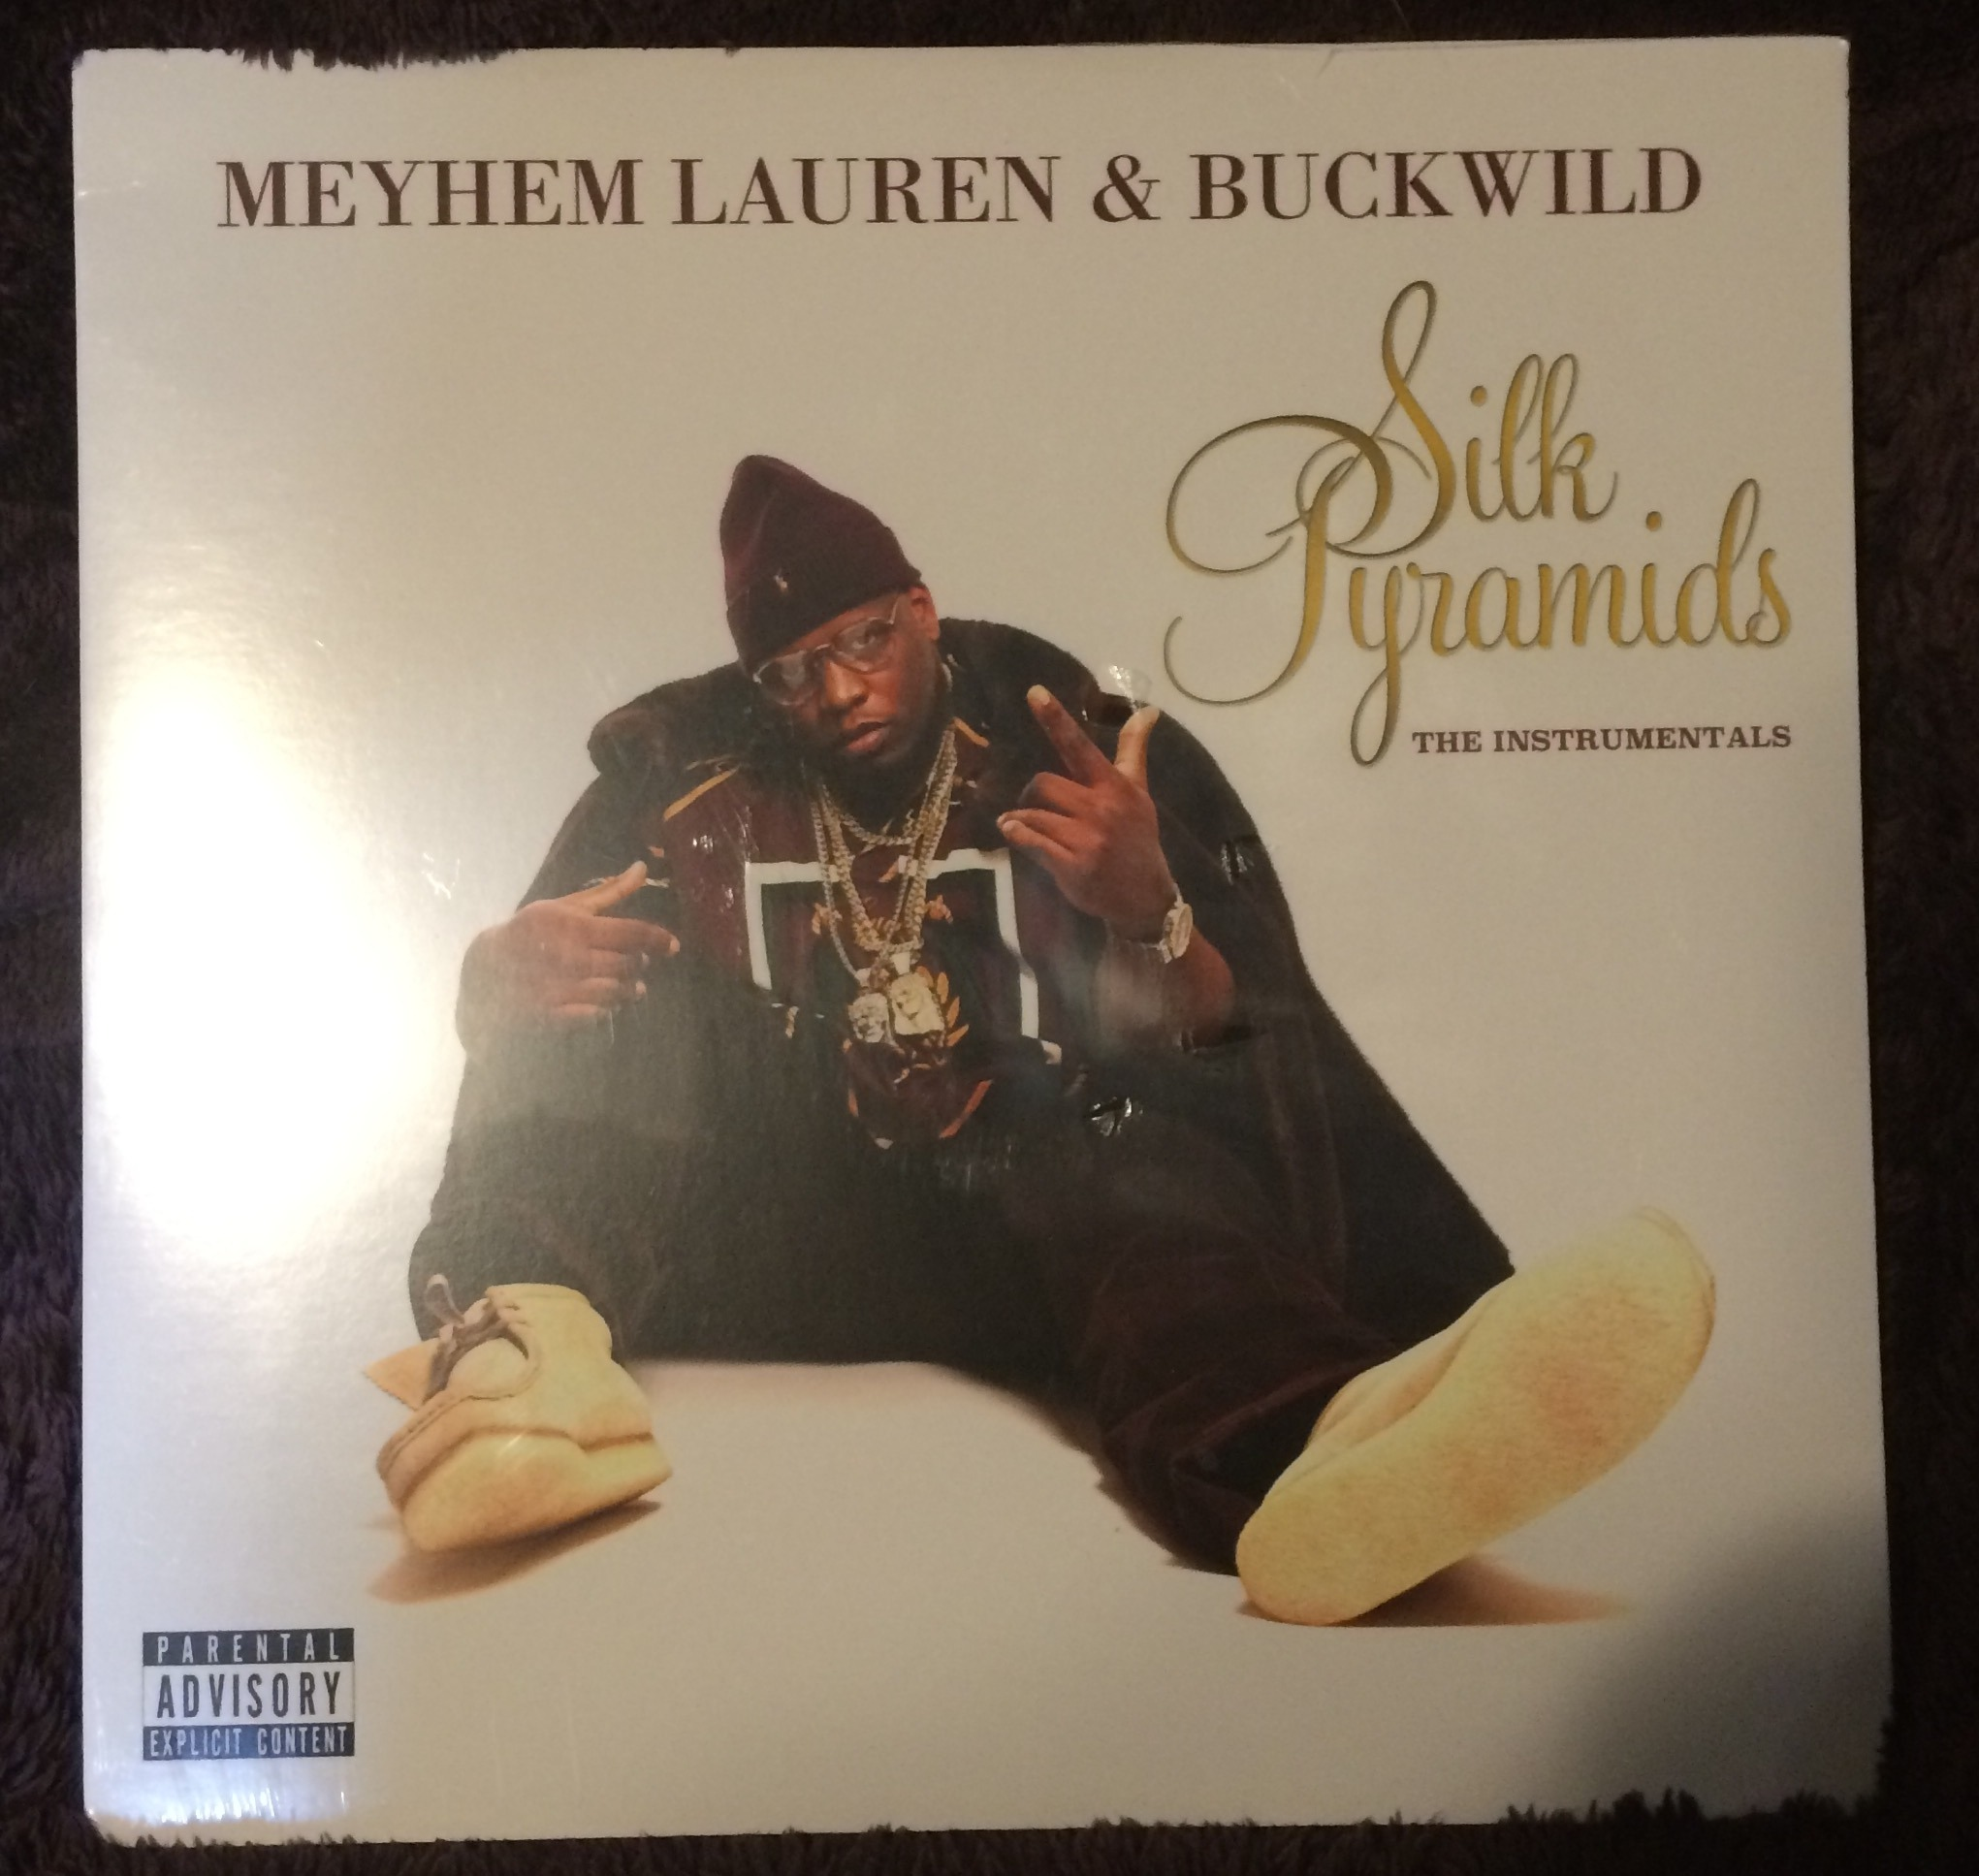 Meyhem Lauren & Buckwild - Silk Pyramids - The Instrumentals (Vinyl LP)